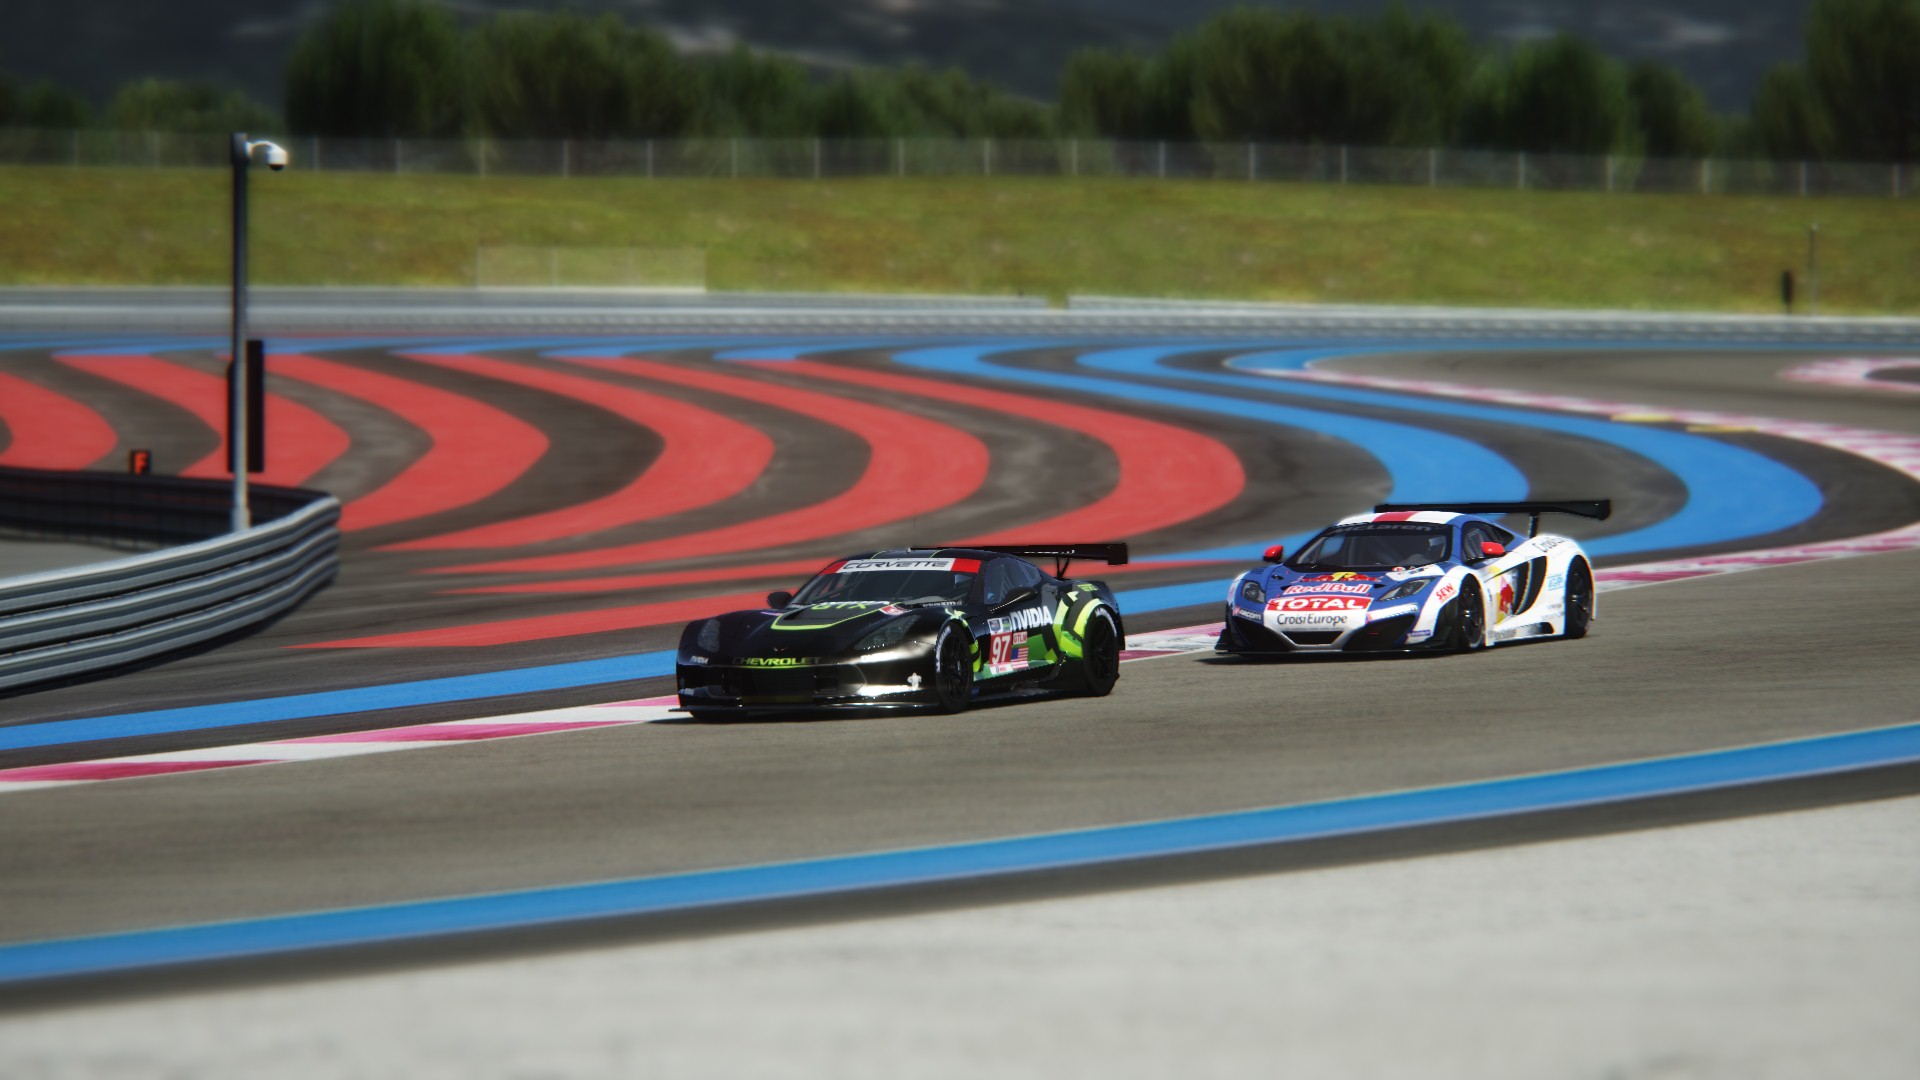 Paul Ricard 0 8 2 for Assetto Corsa – Released – VirtualR